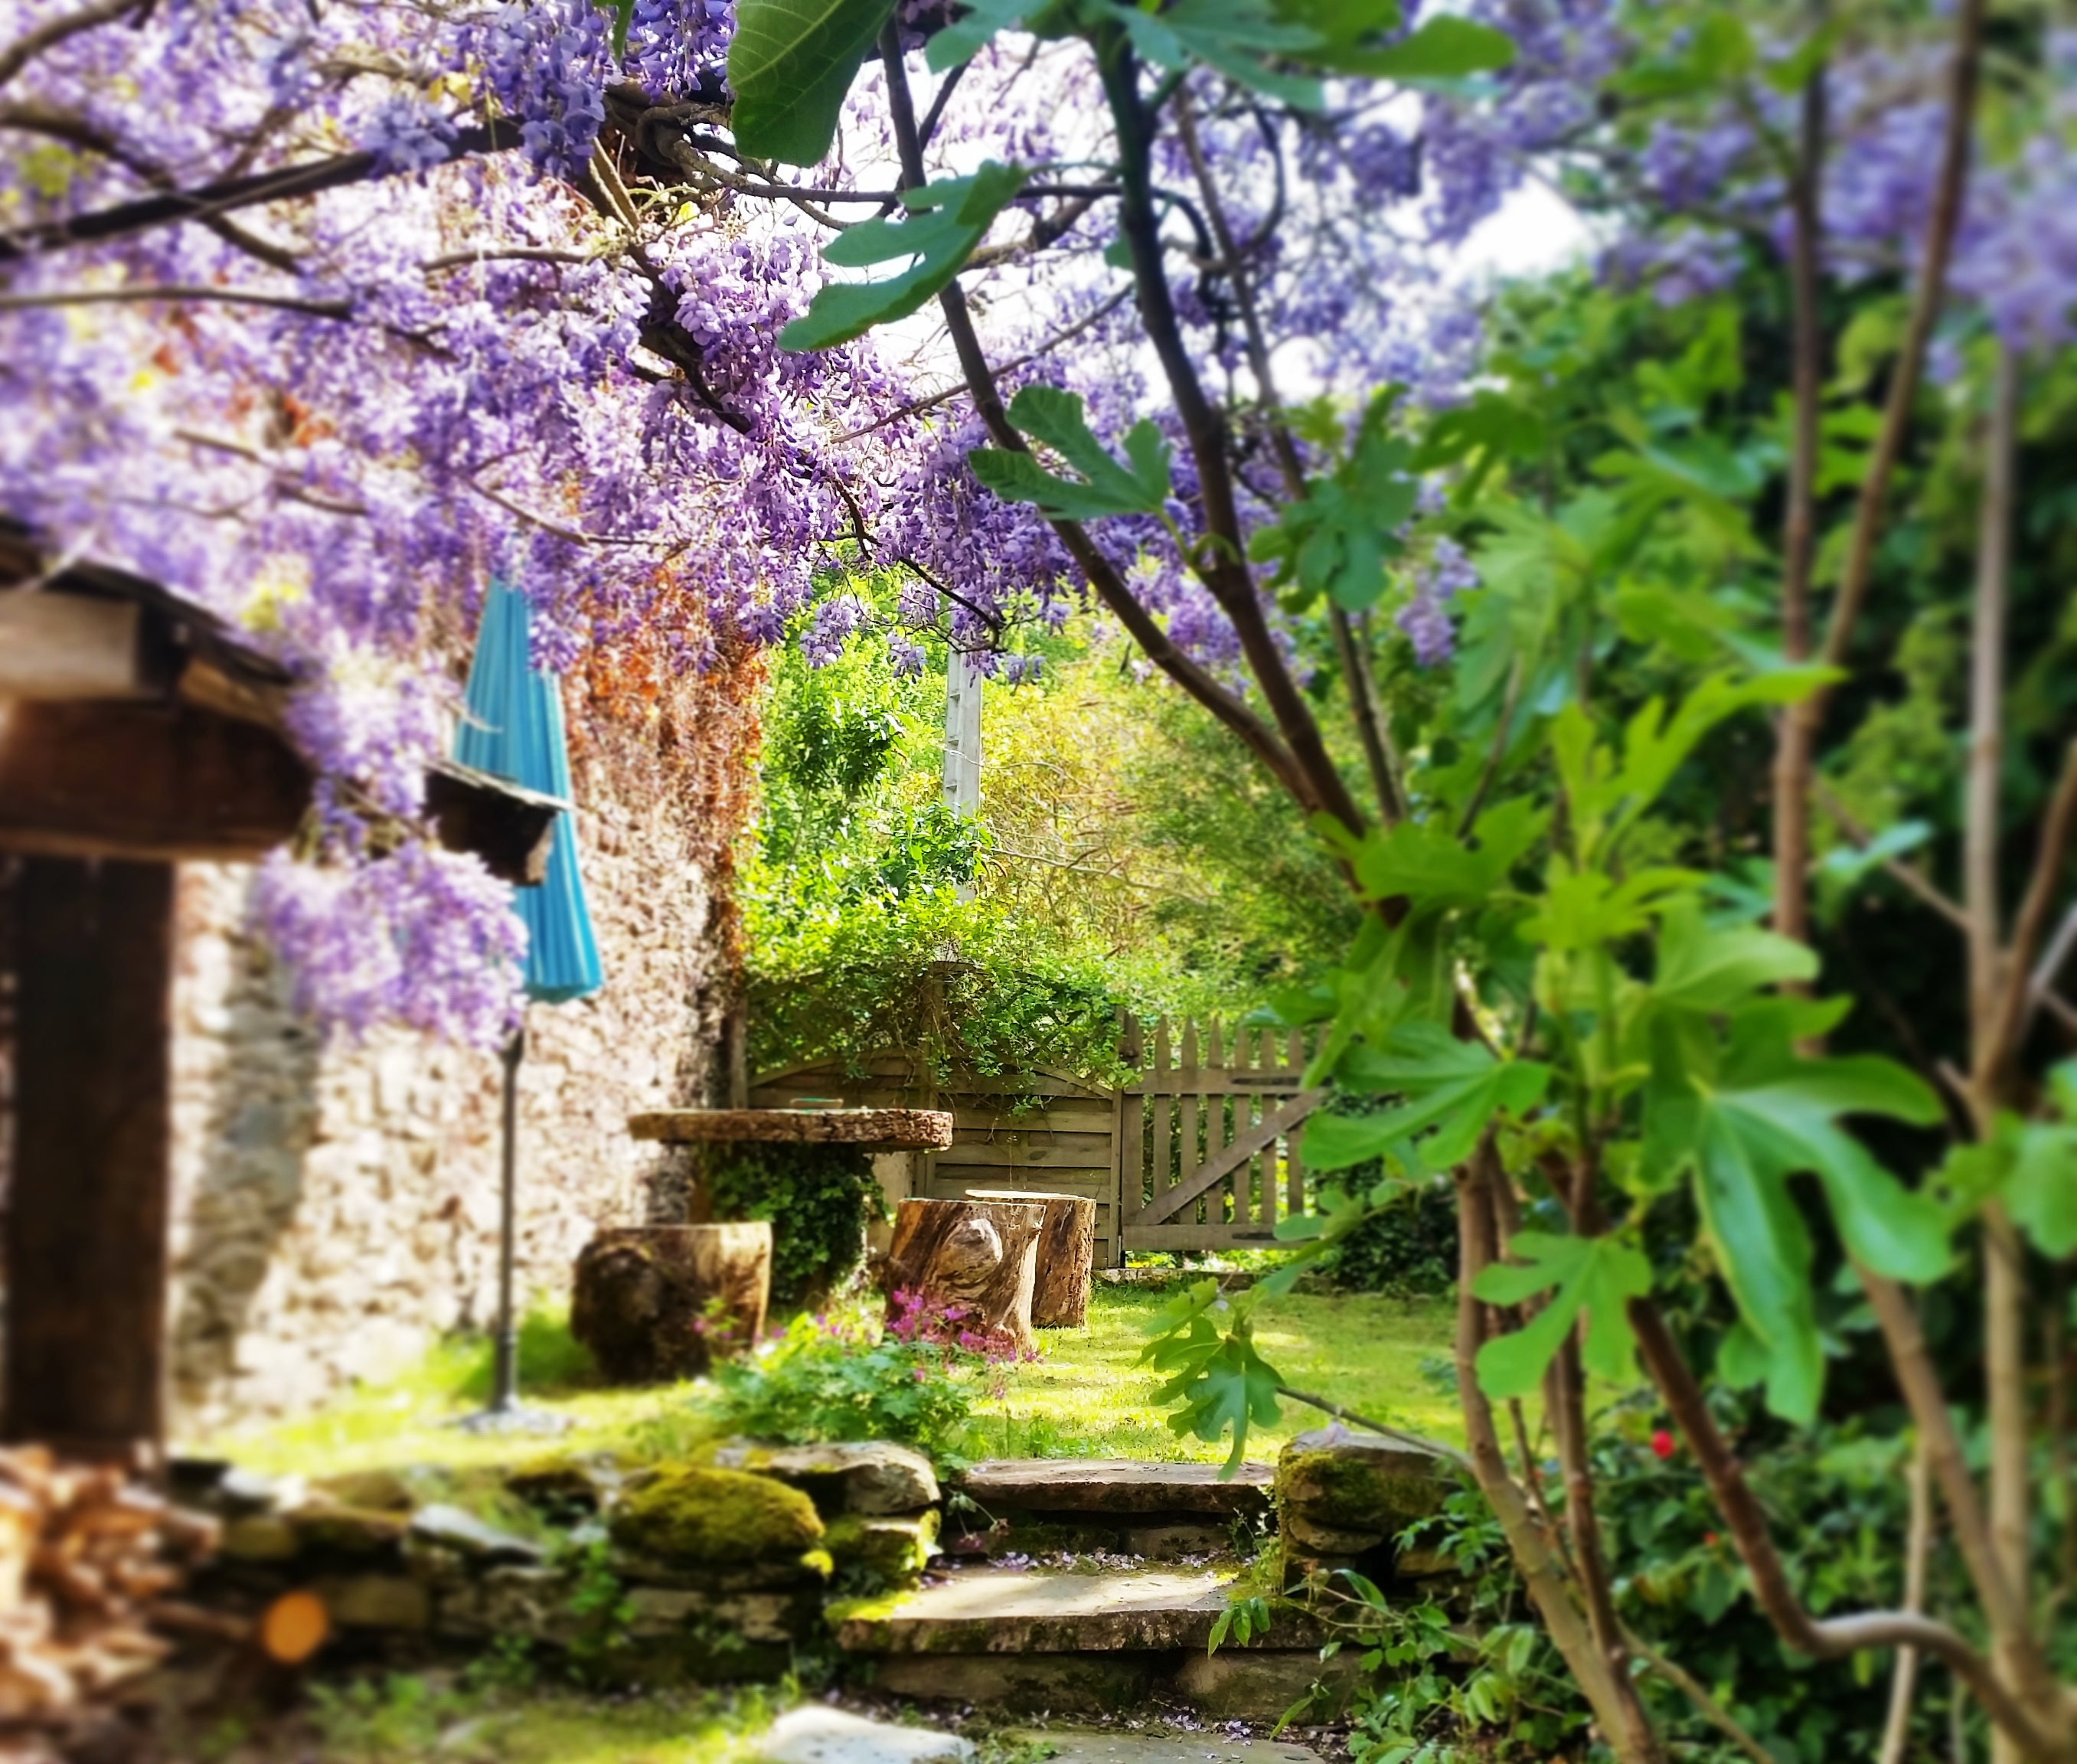 Gite garden in May